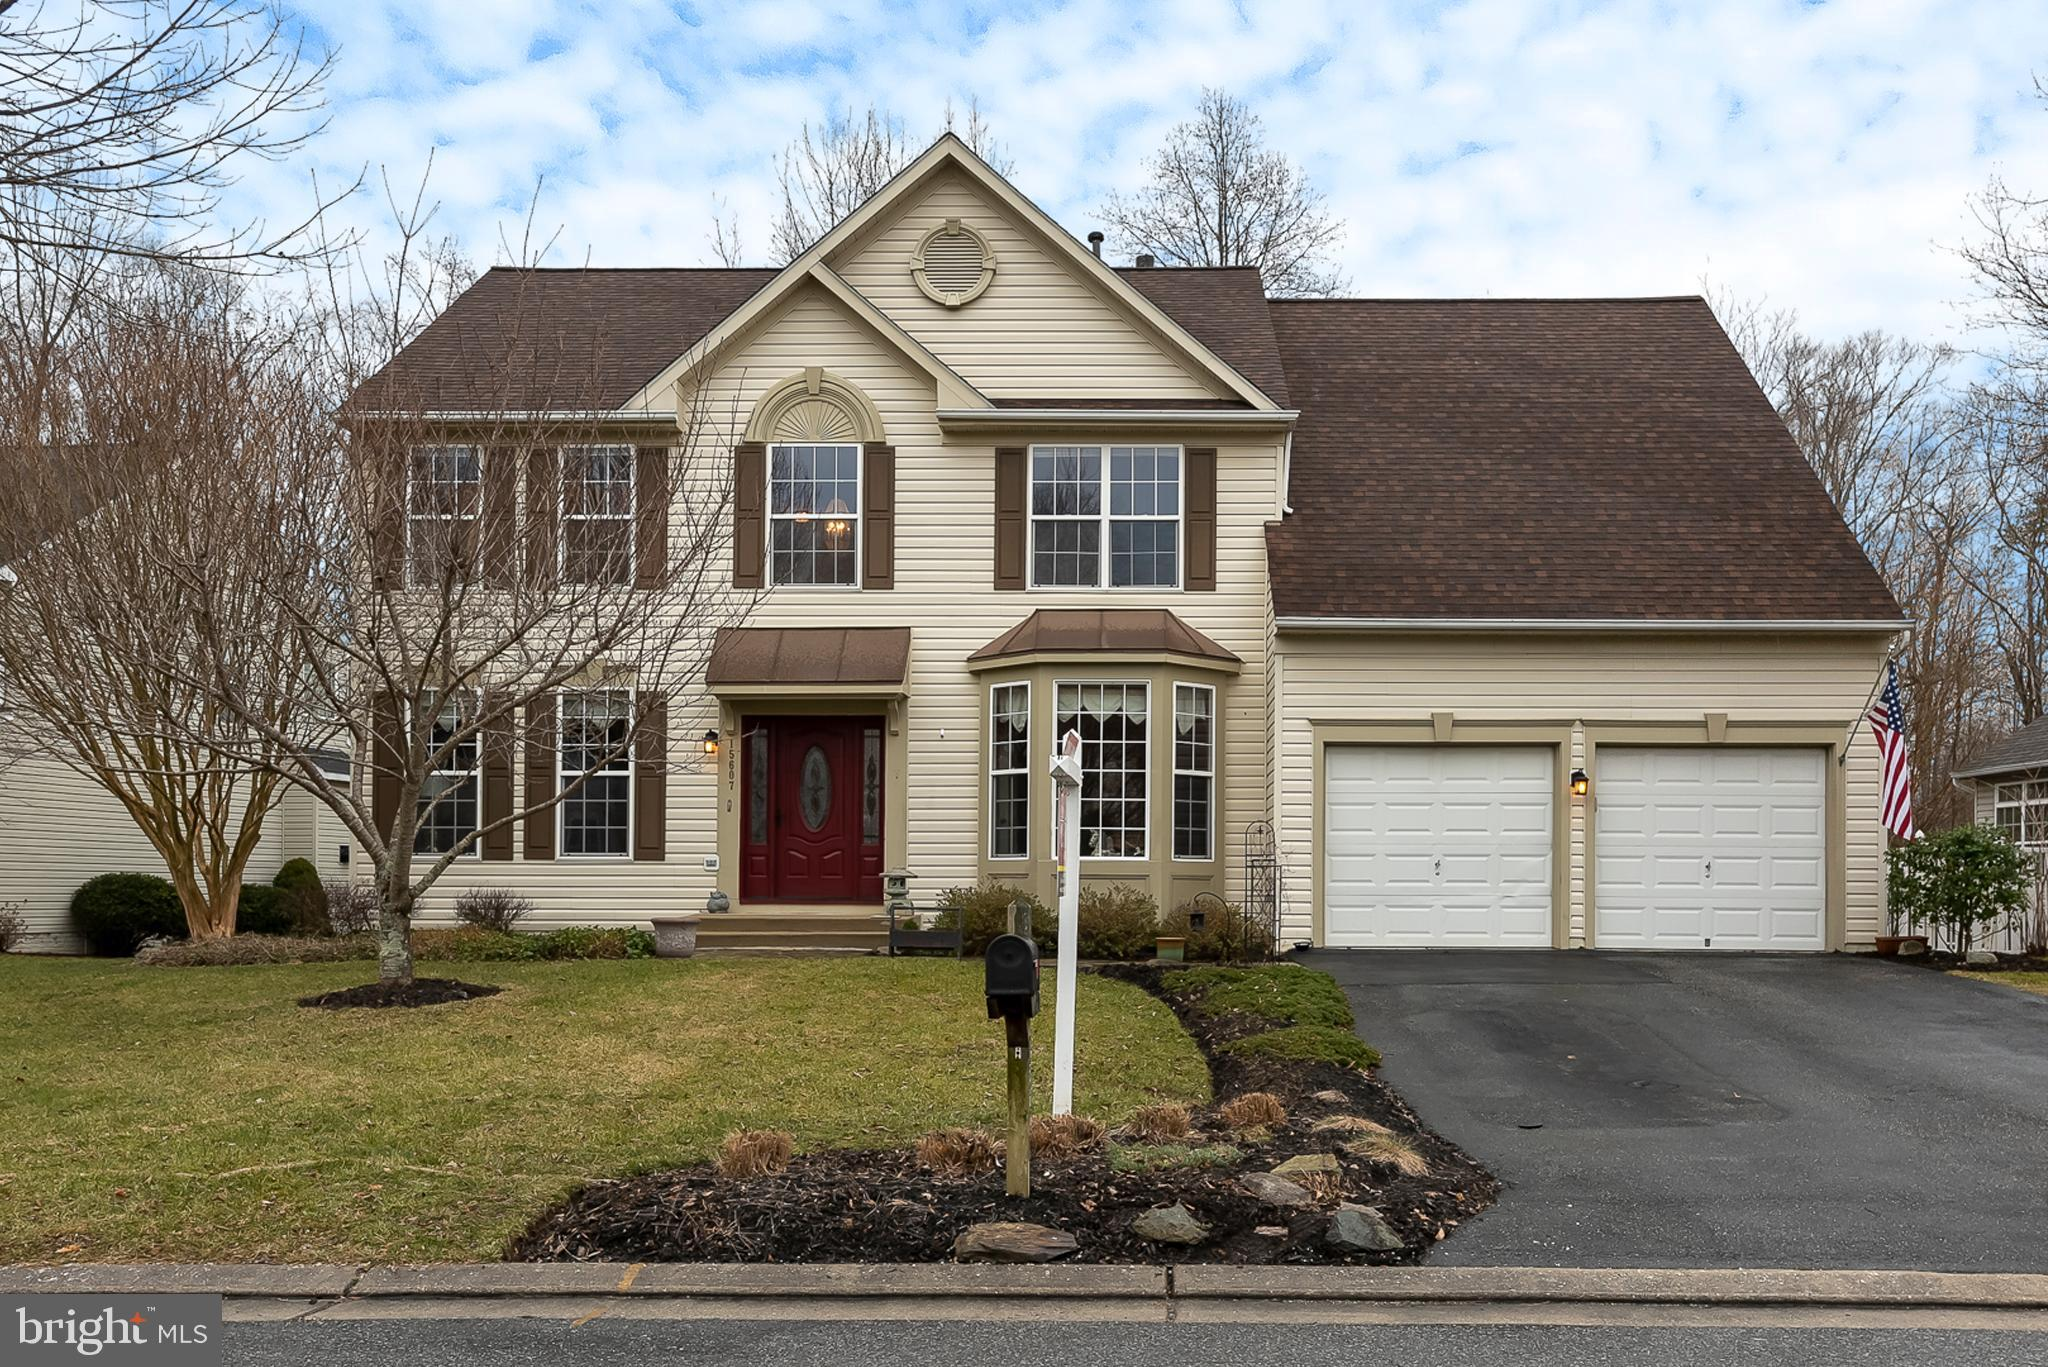 15607 OVERCHASE LANE, BOWIE, MD 20715